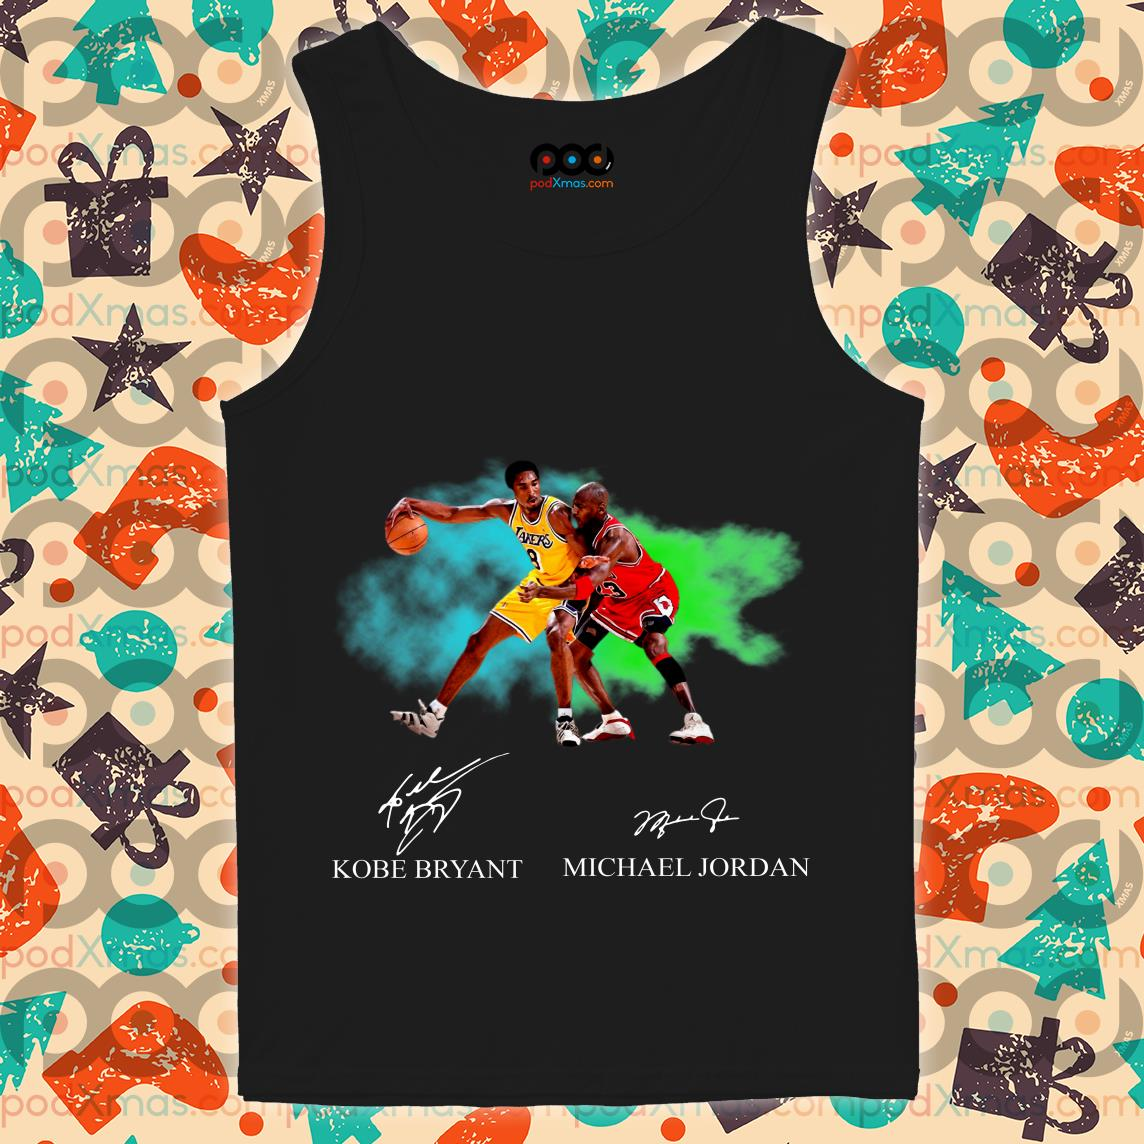 Kobe Bryant vs Michael Jordan Signatures tank top